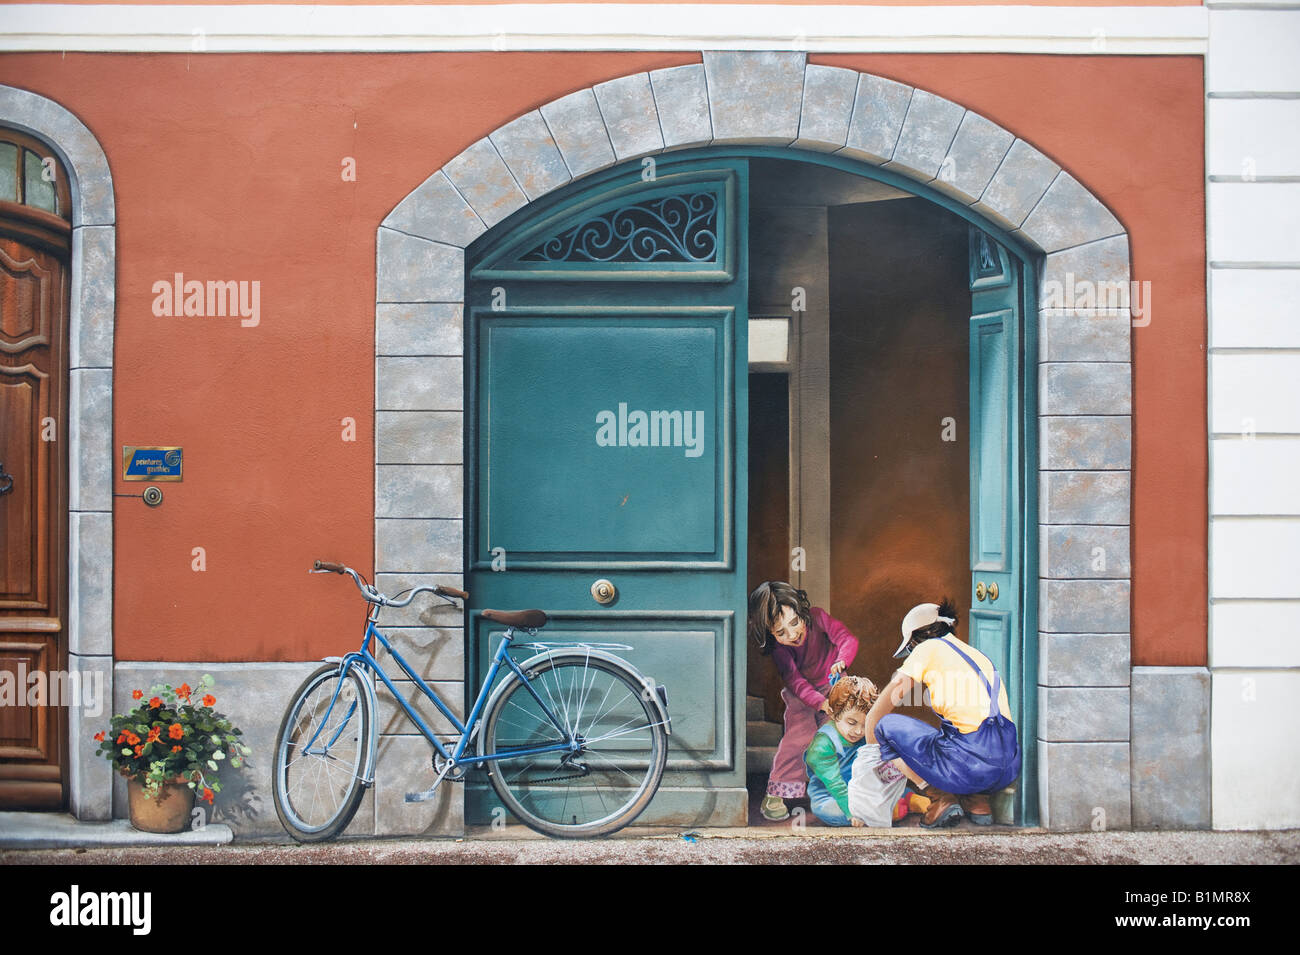 Trompe l oeil wall painting on building facade at for Mural on building